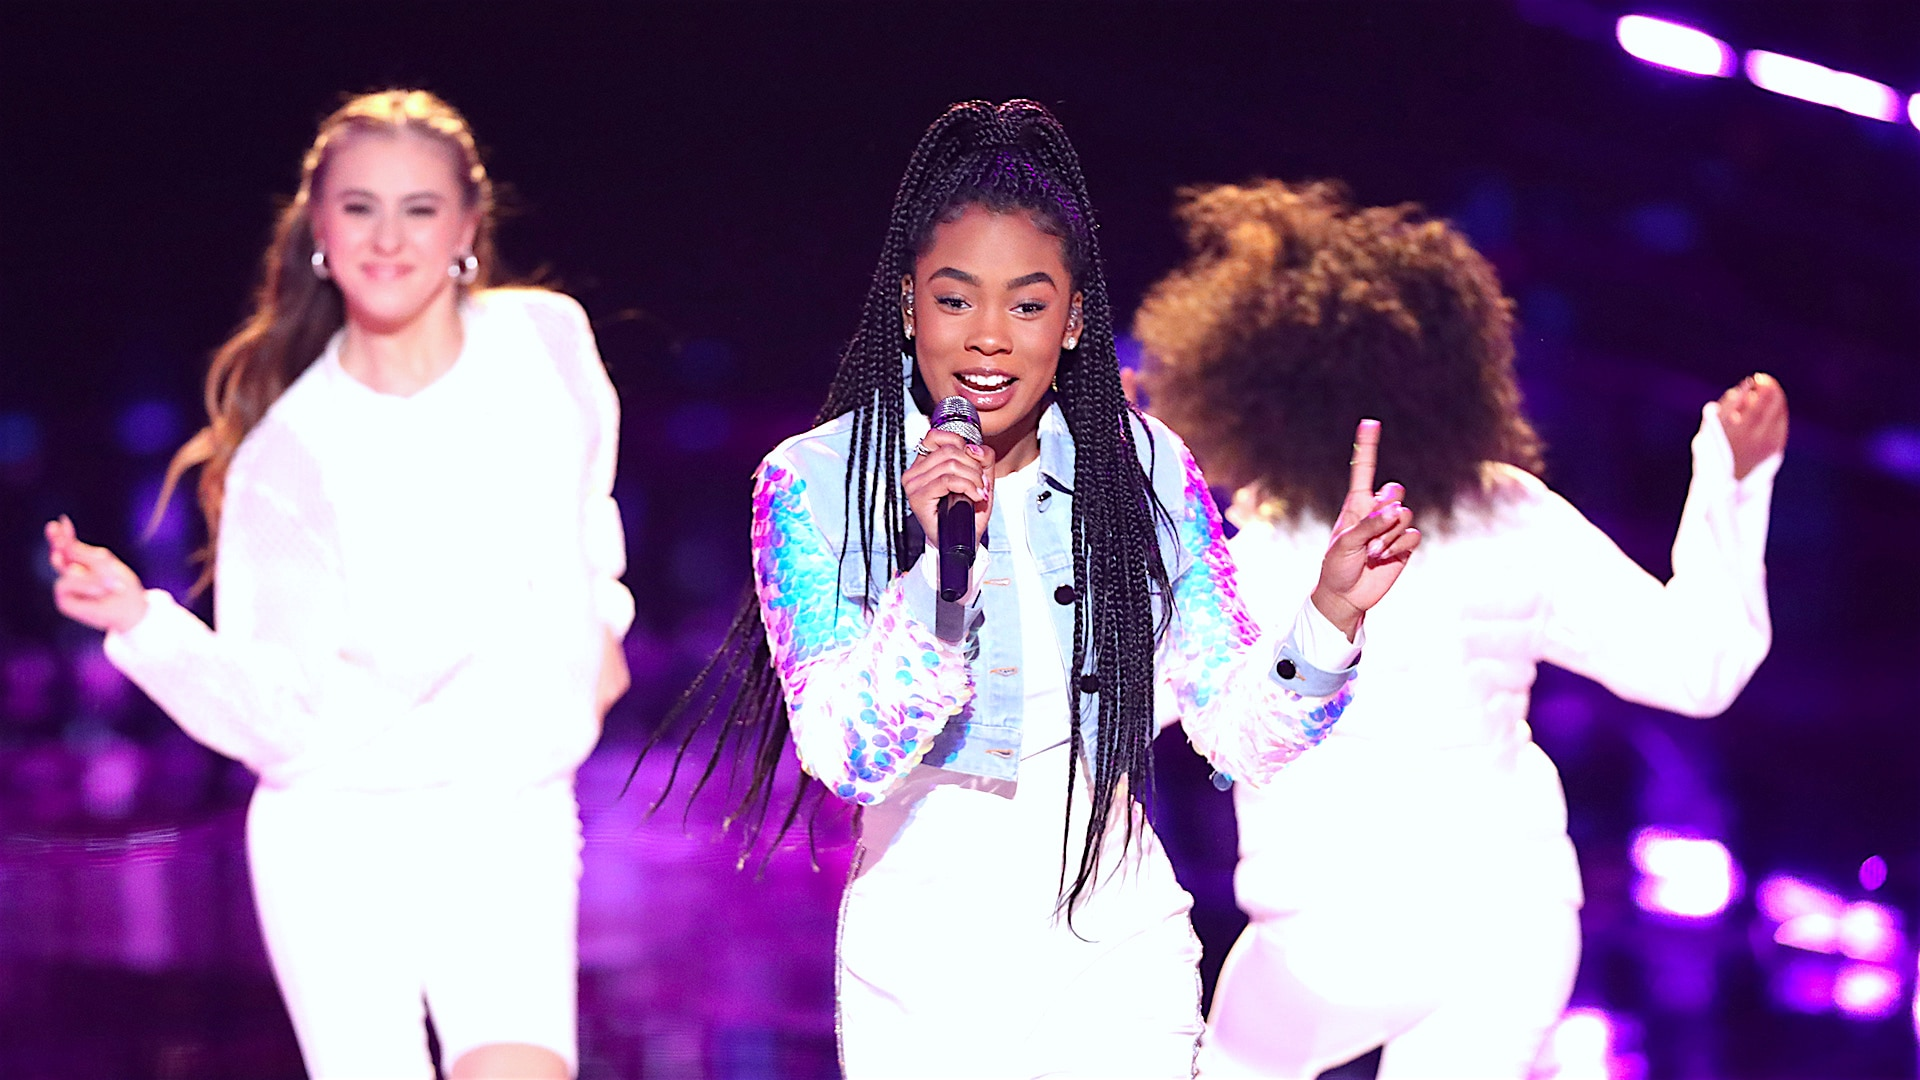 """Watch The Voice Highlight: Kennedy Holmes: """"Me Too"""" - NBC.com"""